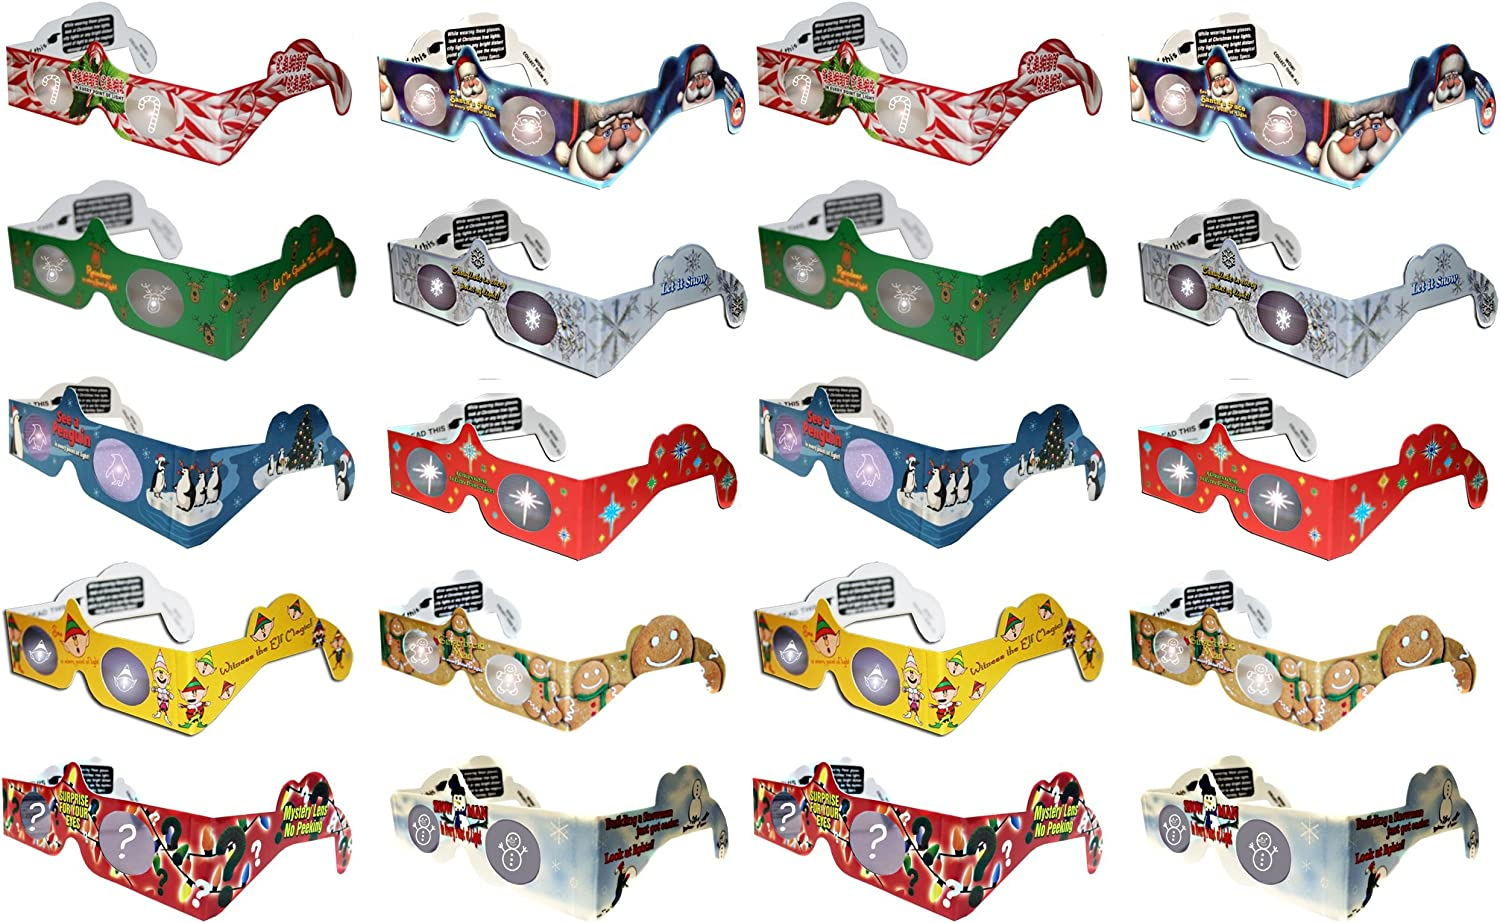 Holiday Specs 3D Glasses-Magical 2021new shipping free shipping will appear befo images Max 81% OFF